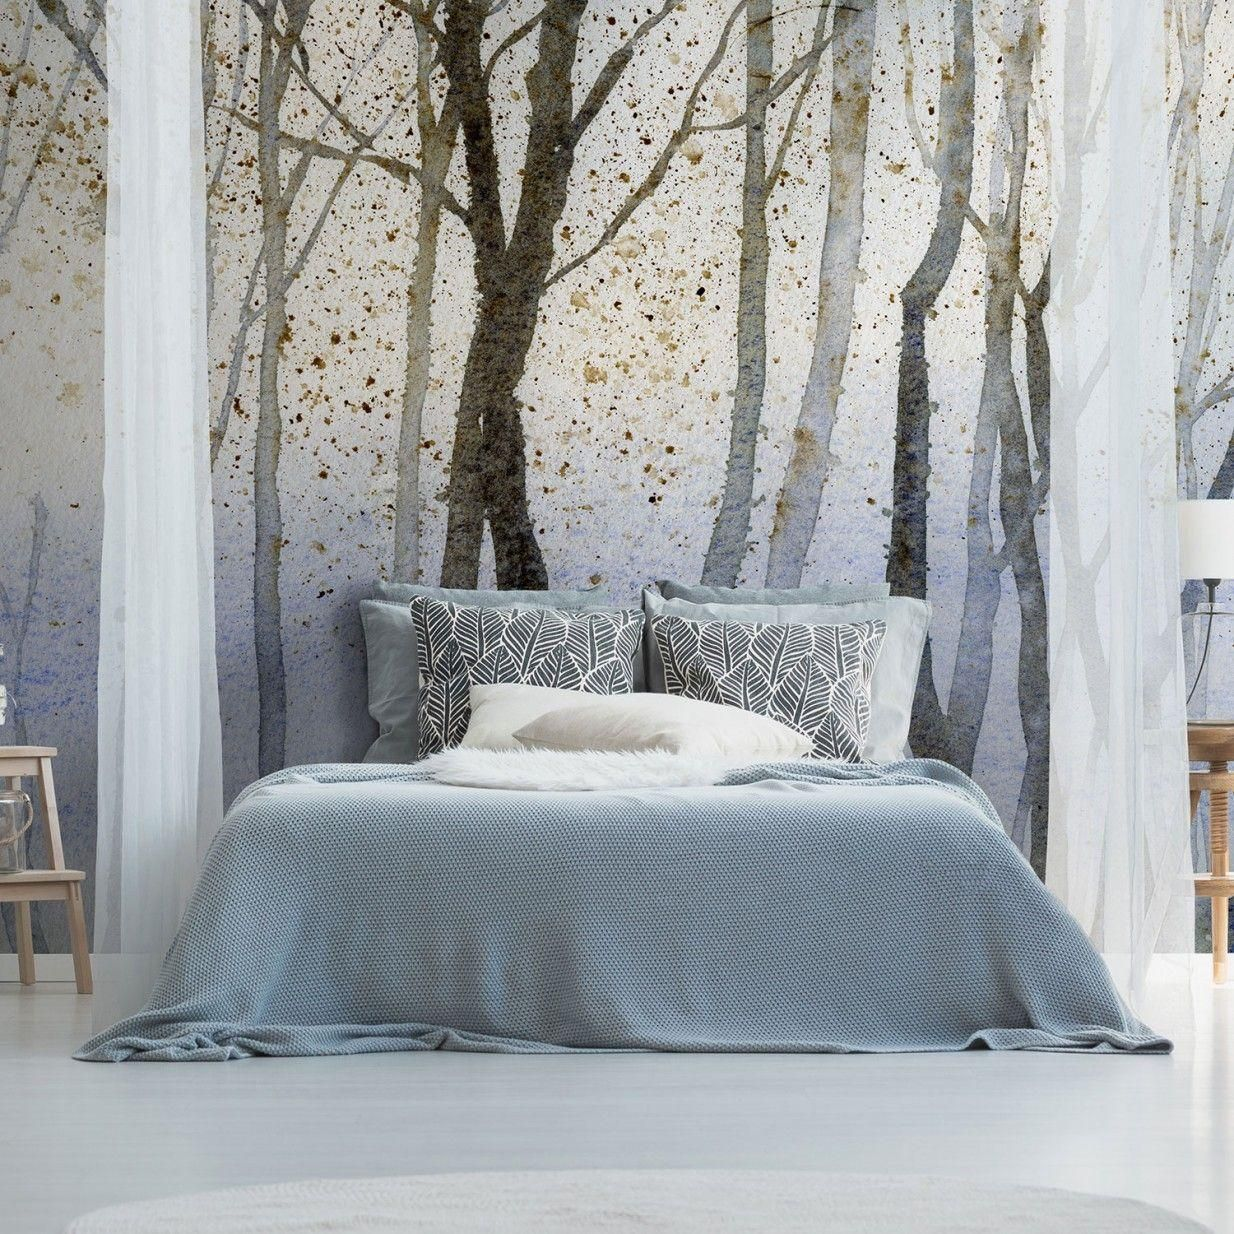 16 Tapeten Ideen Für Schlafzimmer Feature Wall Bedroom Wallpaper House Design Wall Decor Bedroom